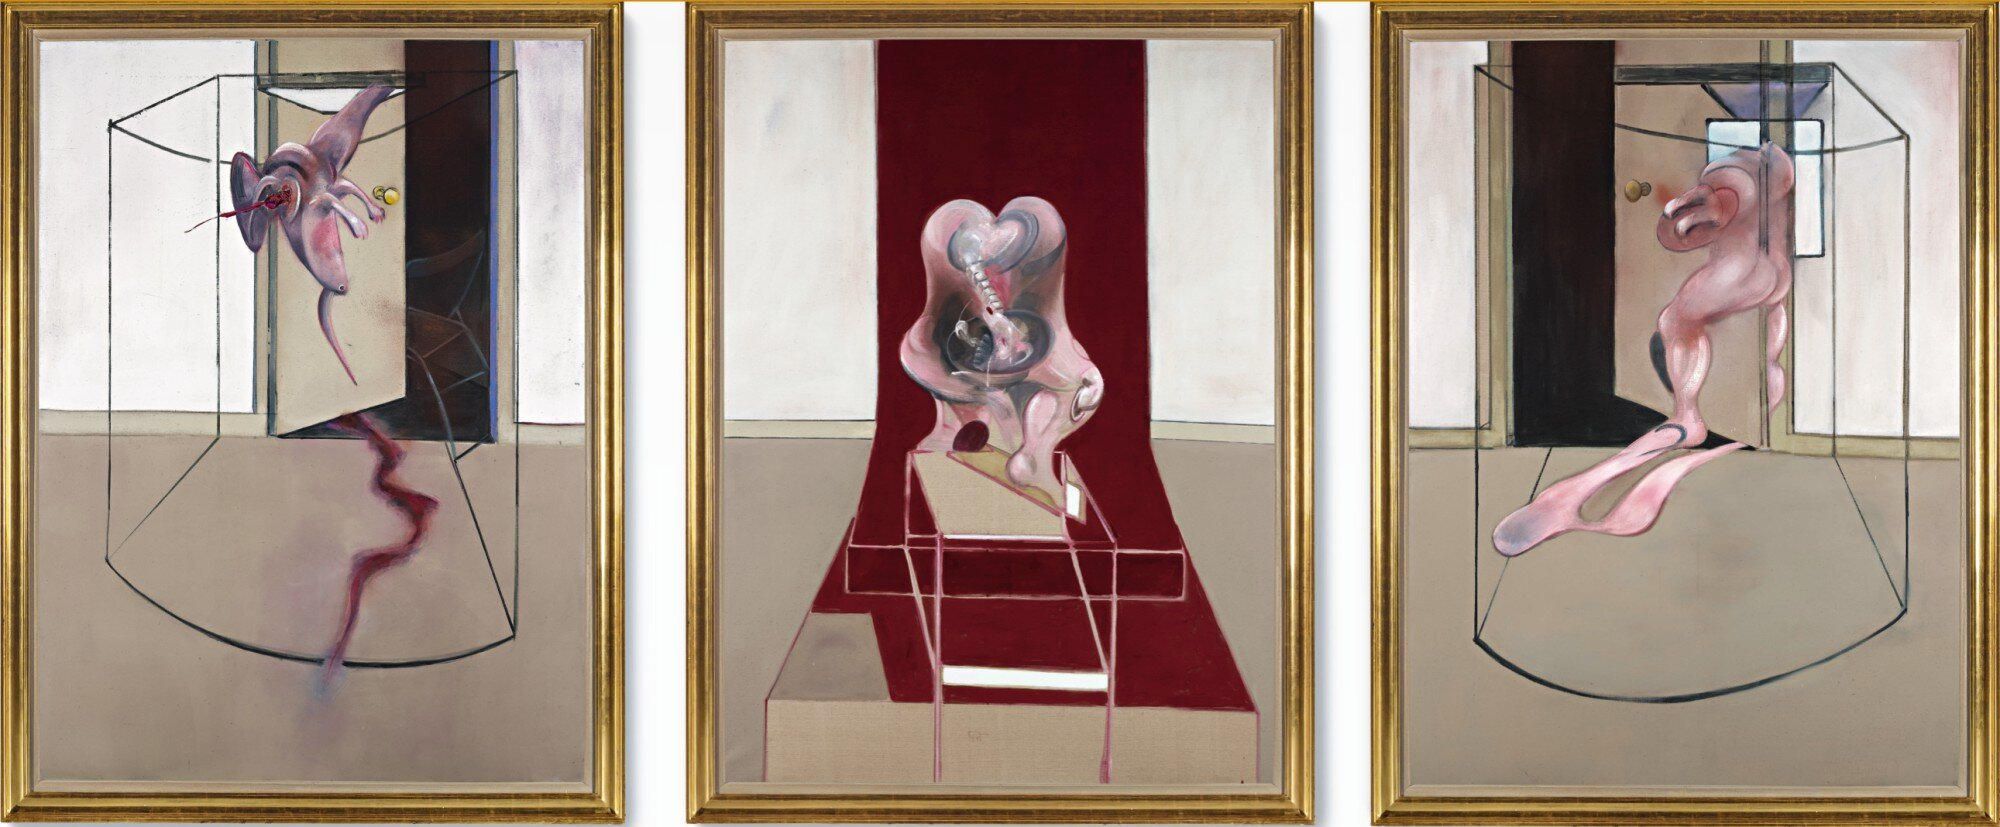 Francis Bacon Triptych inspired by the Oresteia of Aeschylus (photo courtesy Sotheby's)